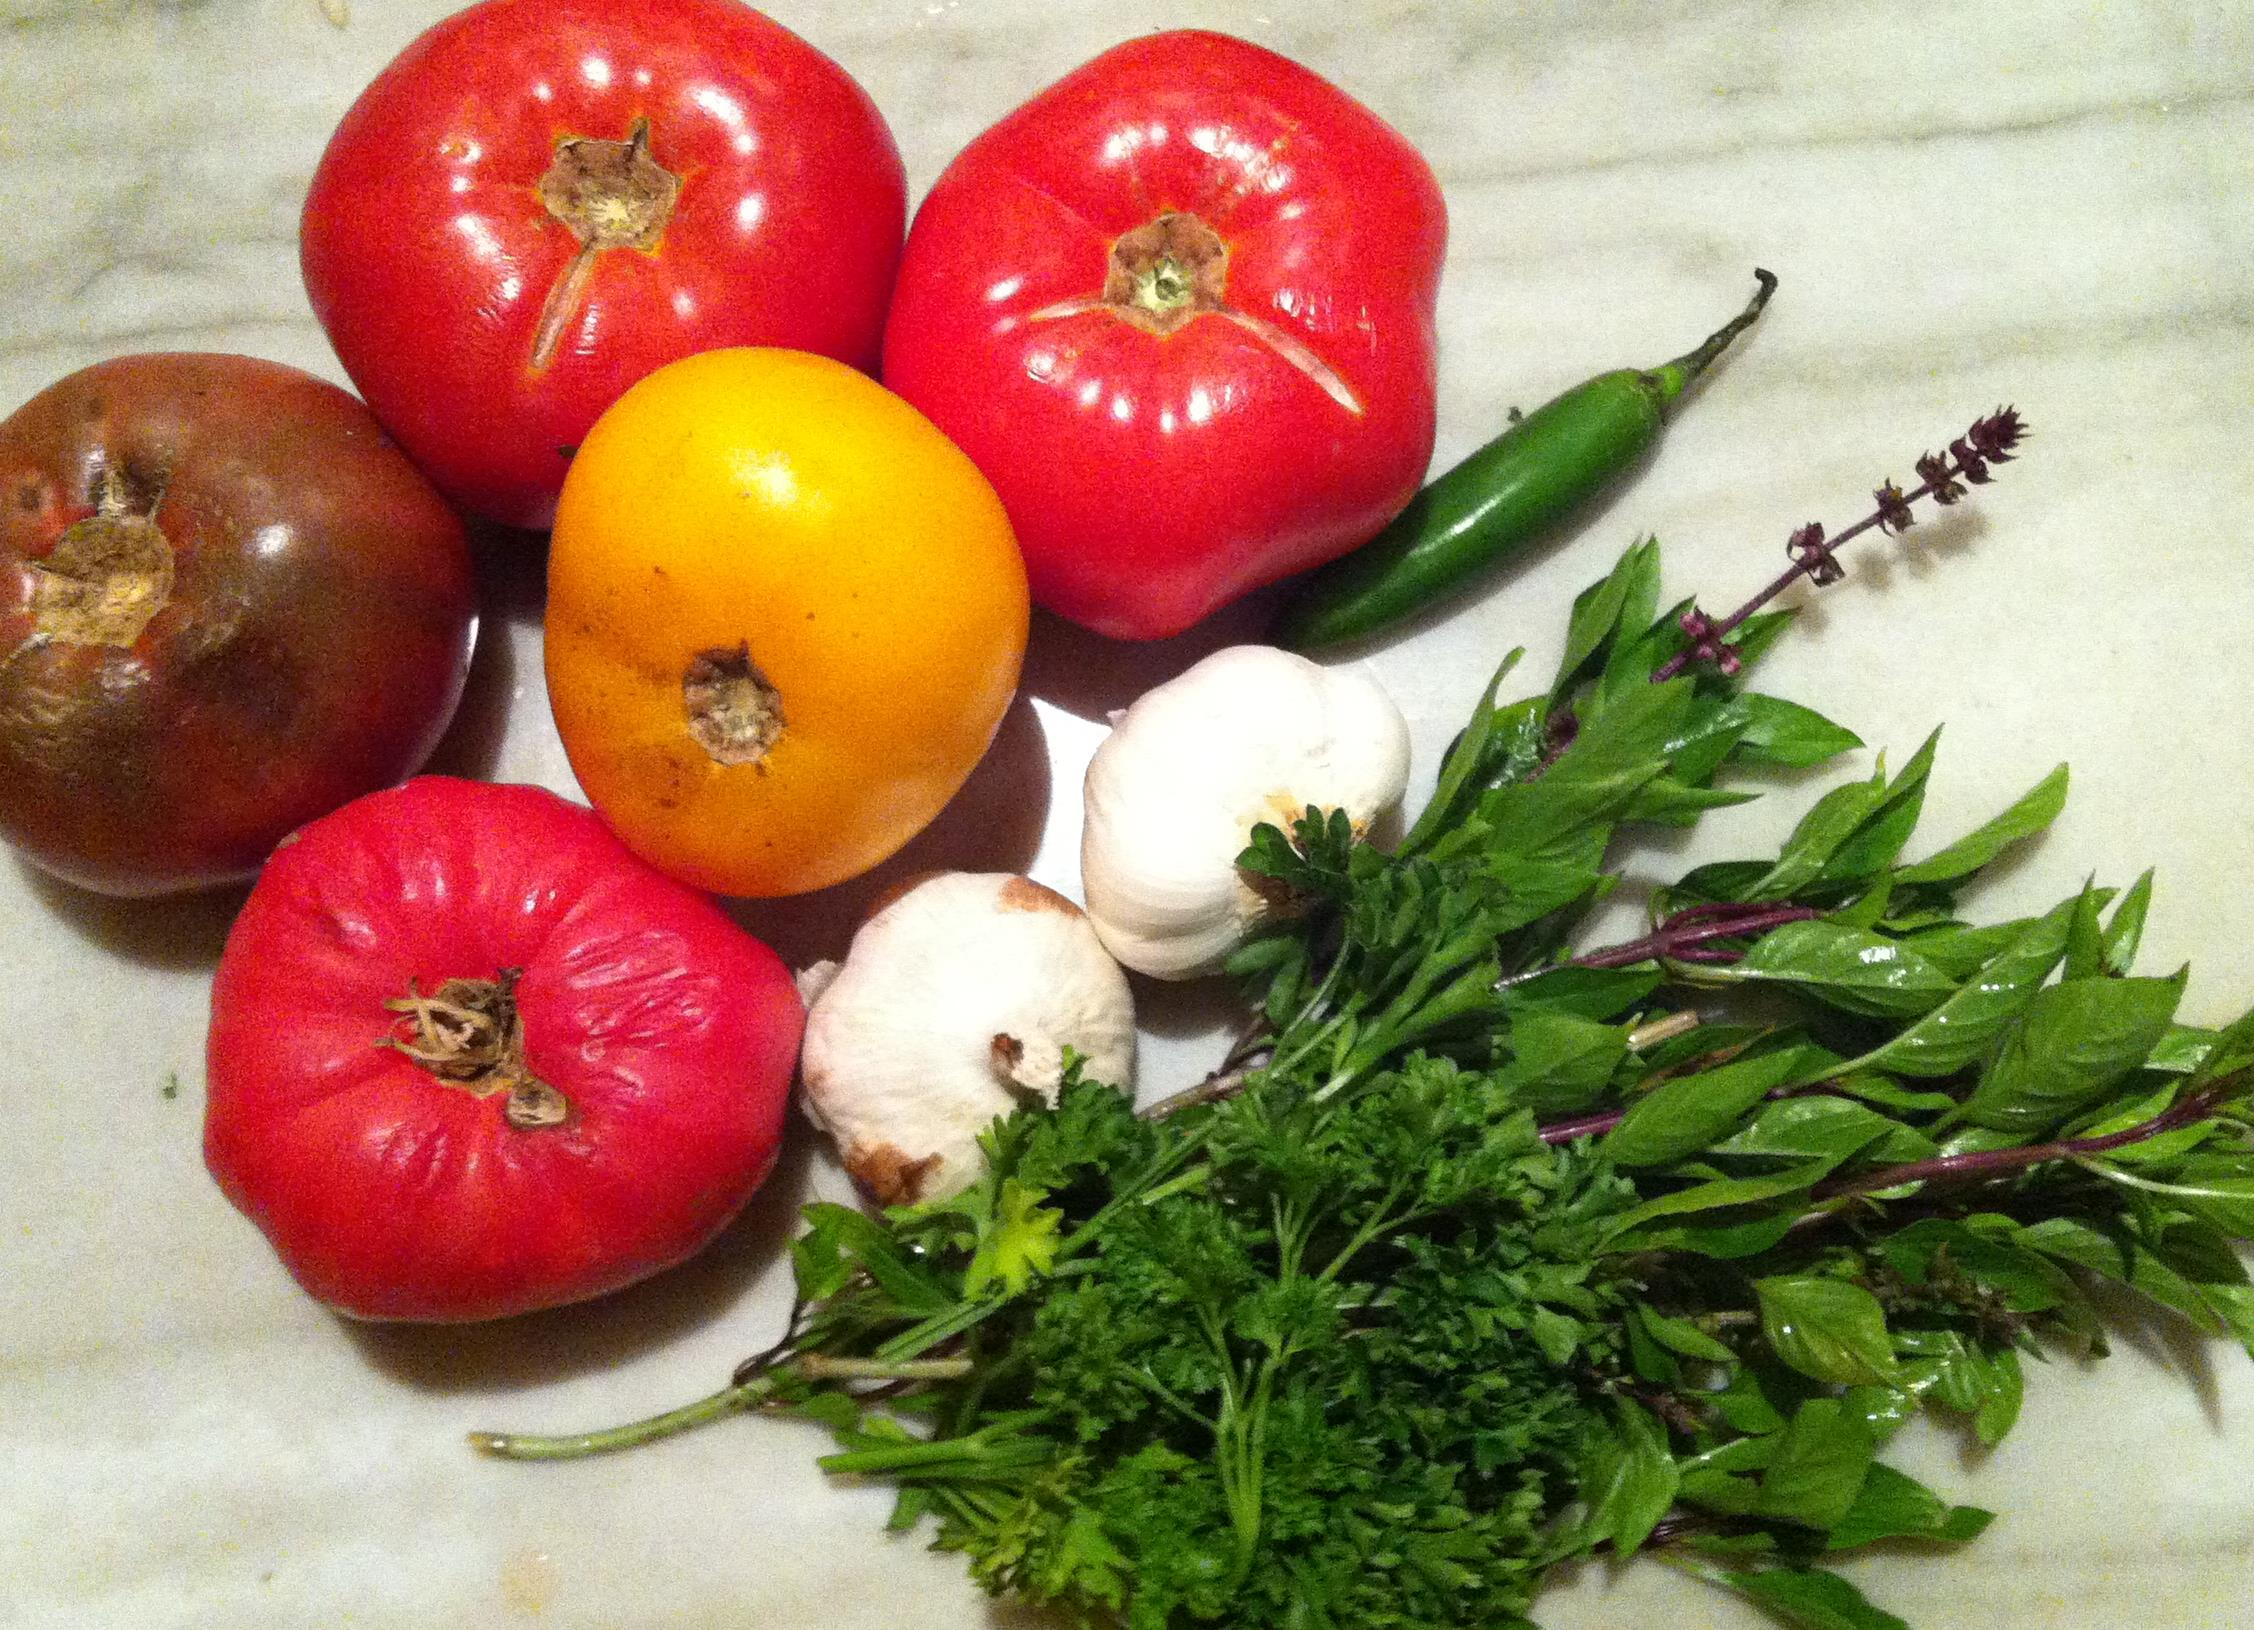 Ingredients! Tomatoes, garlic, serrano chili, thai basil and parsley (shallots are missing from this photo)